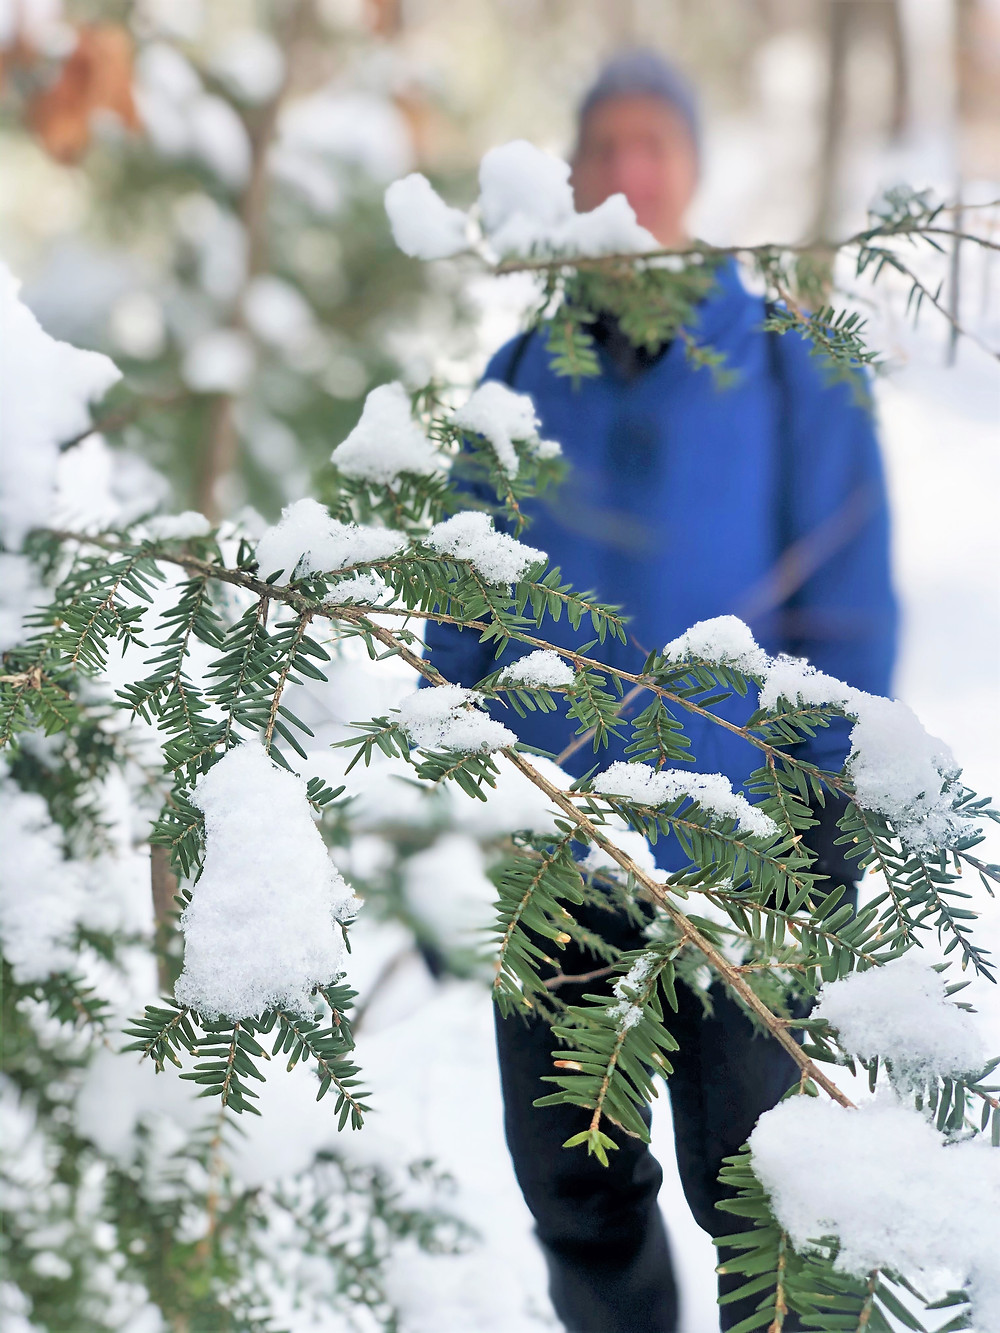 Snow covering evergreen branch at Beaver Brook Conservations Lands in Hollis new Hampshire